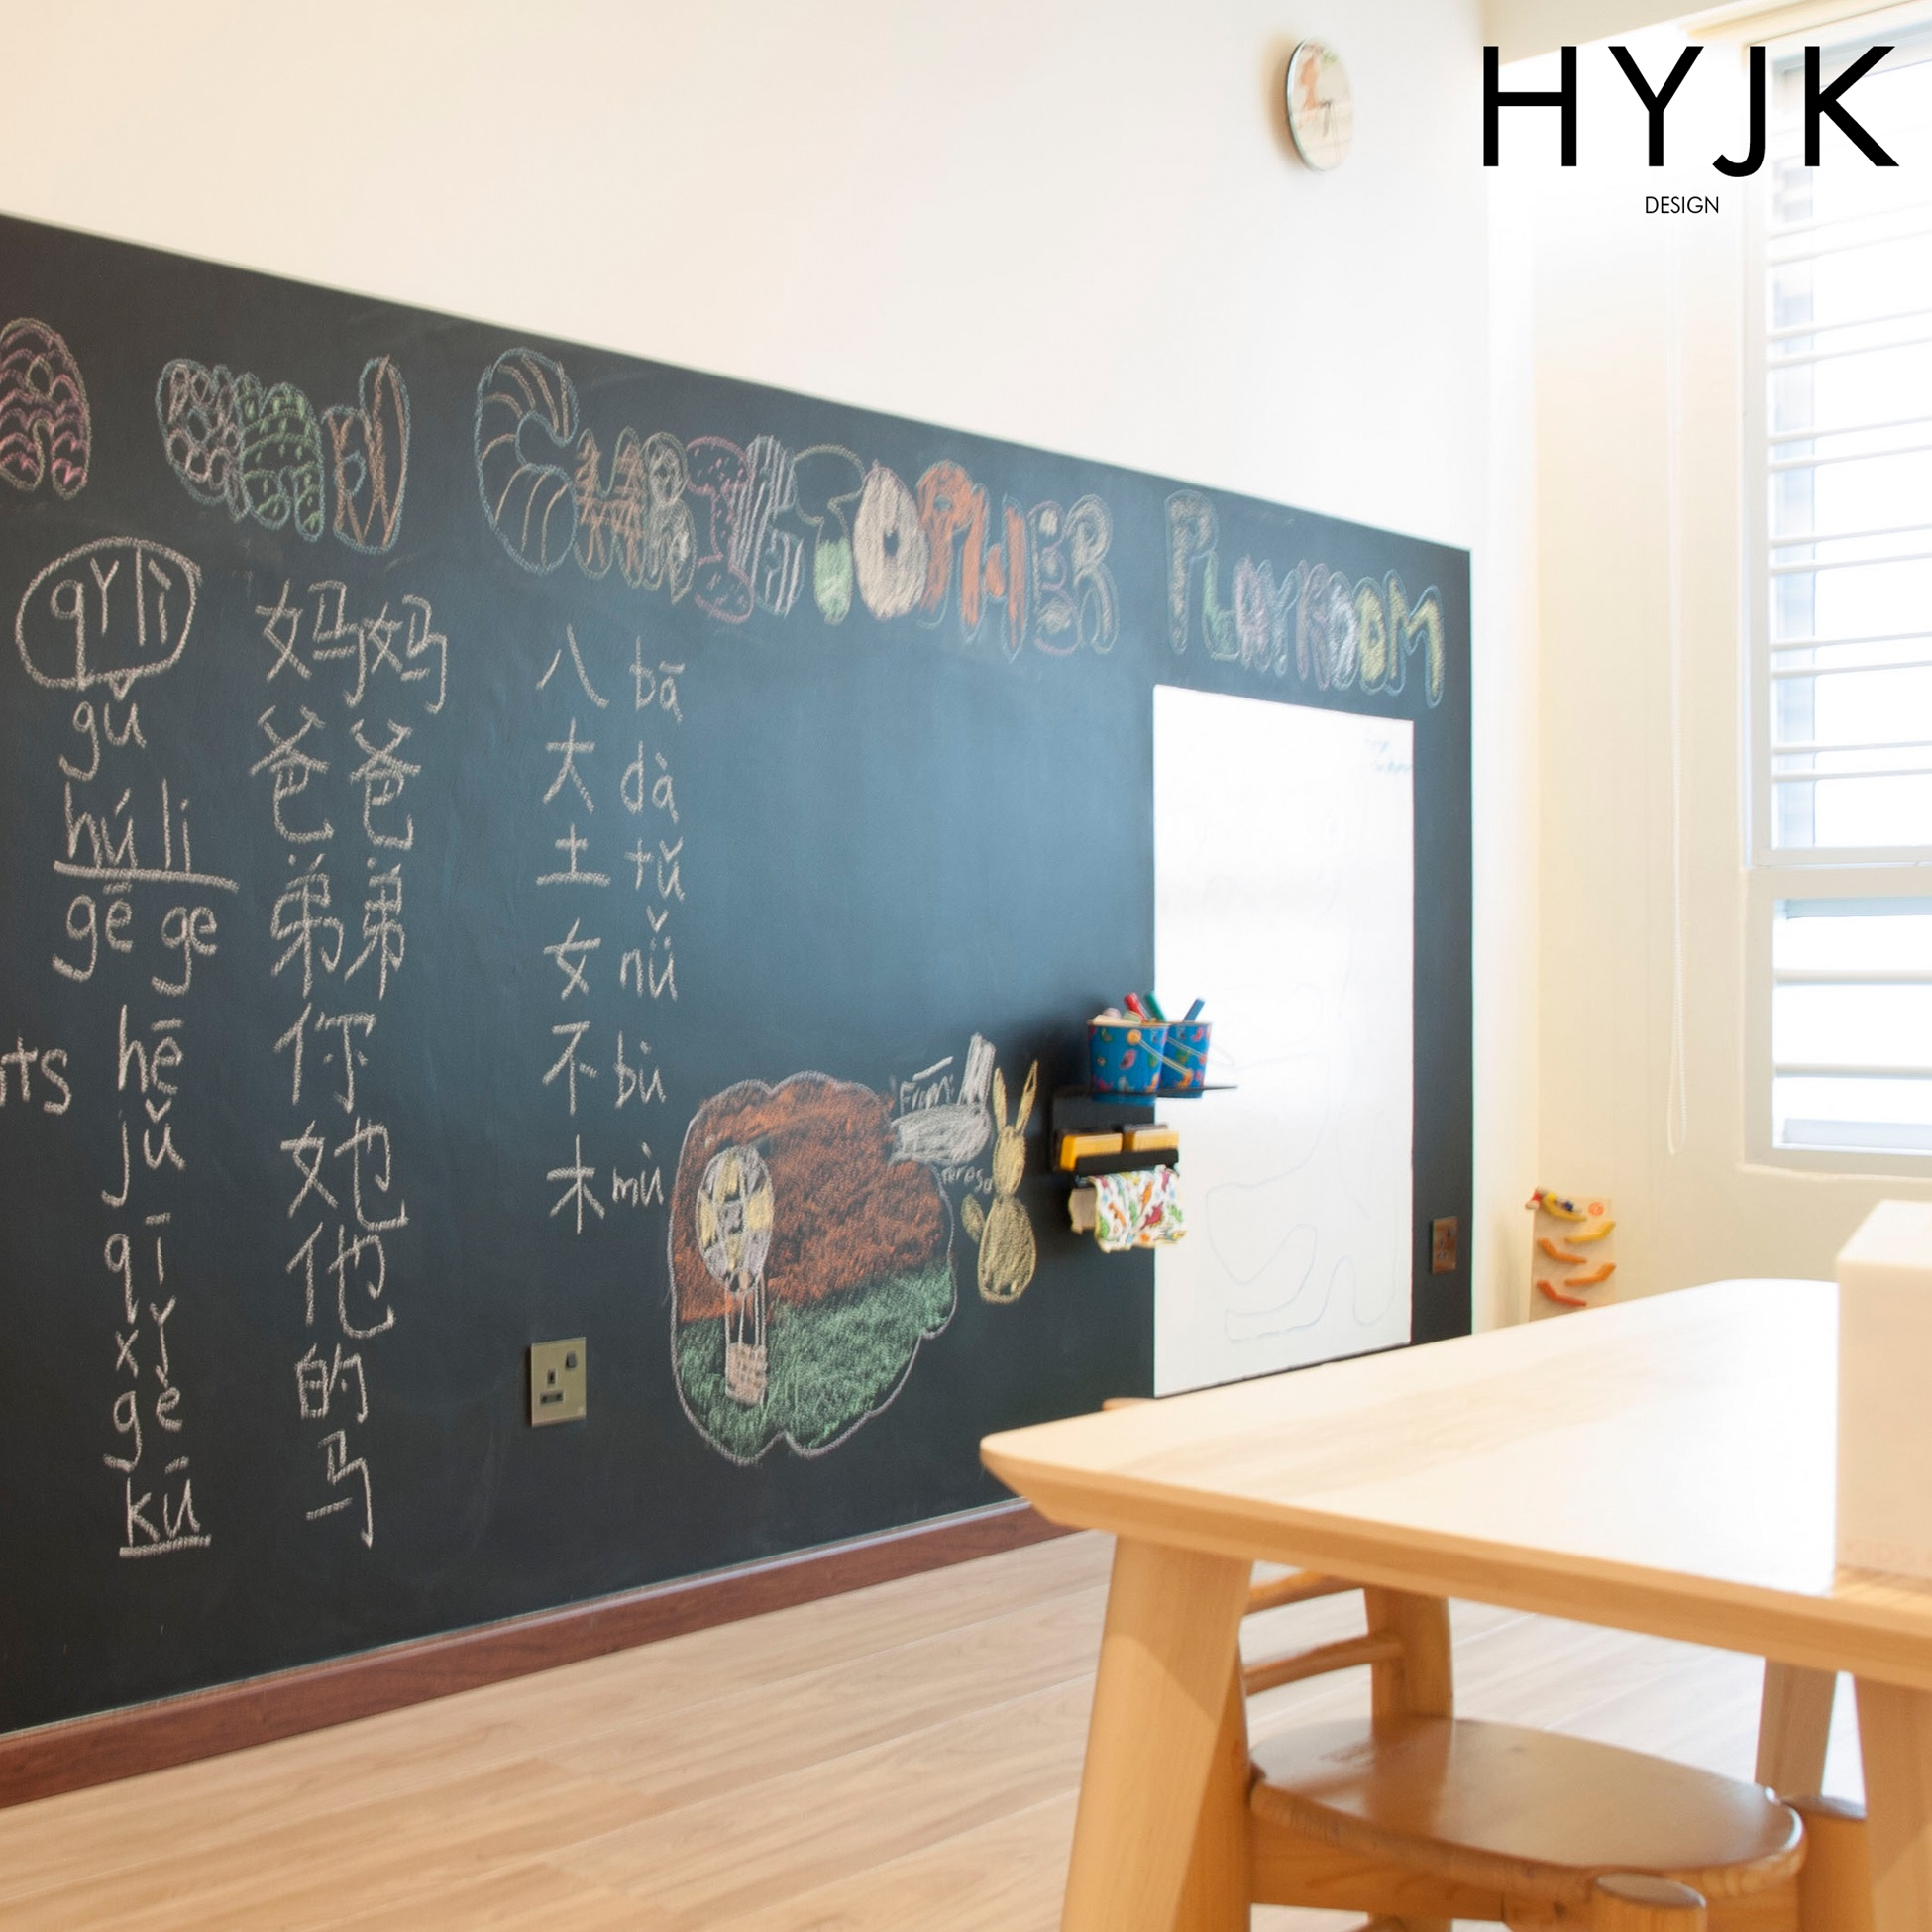 A large writing wall to let the little ones' imagination run wild, and at other times, to facilitate learning. Accomplished using chalkboard and whiteboard paint. Wall-mounted holder for writing materials, designed and 3D printed by hungyijaime.